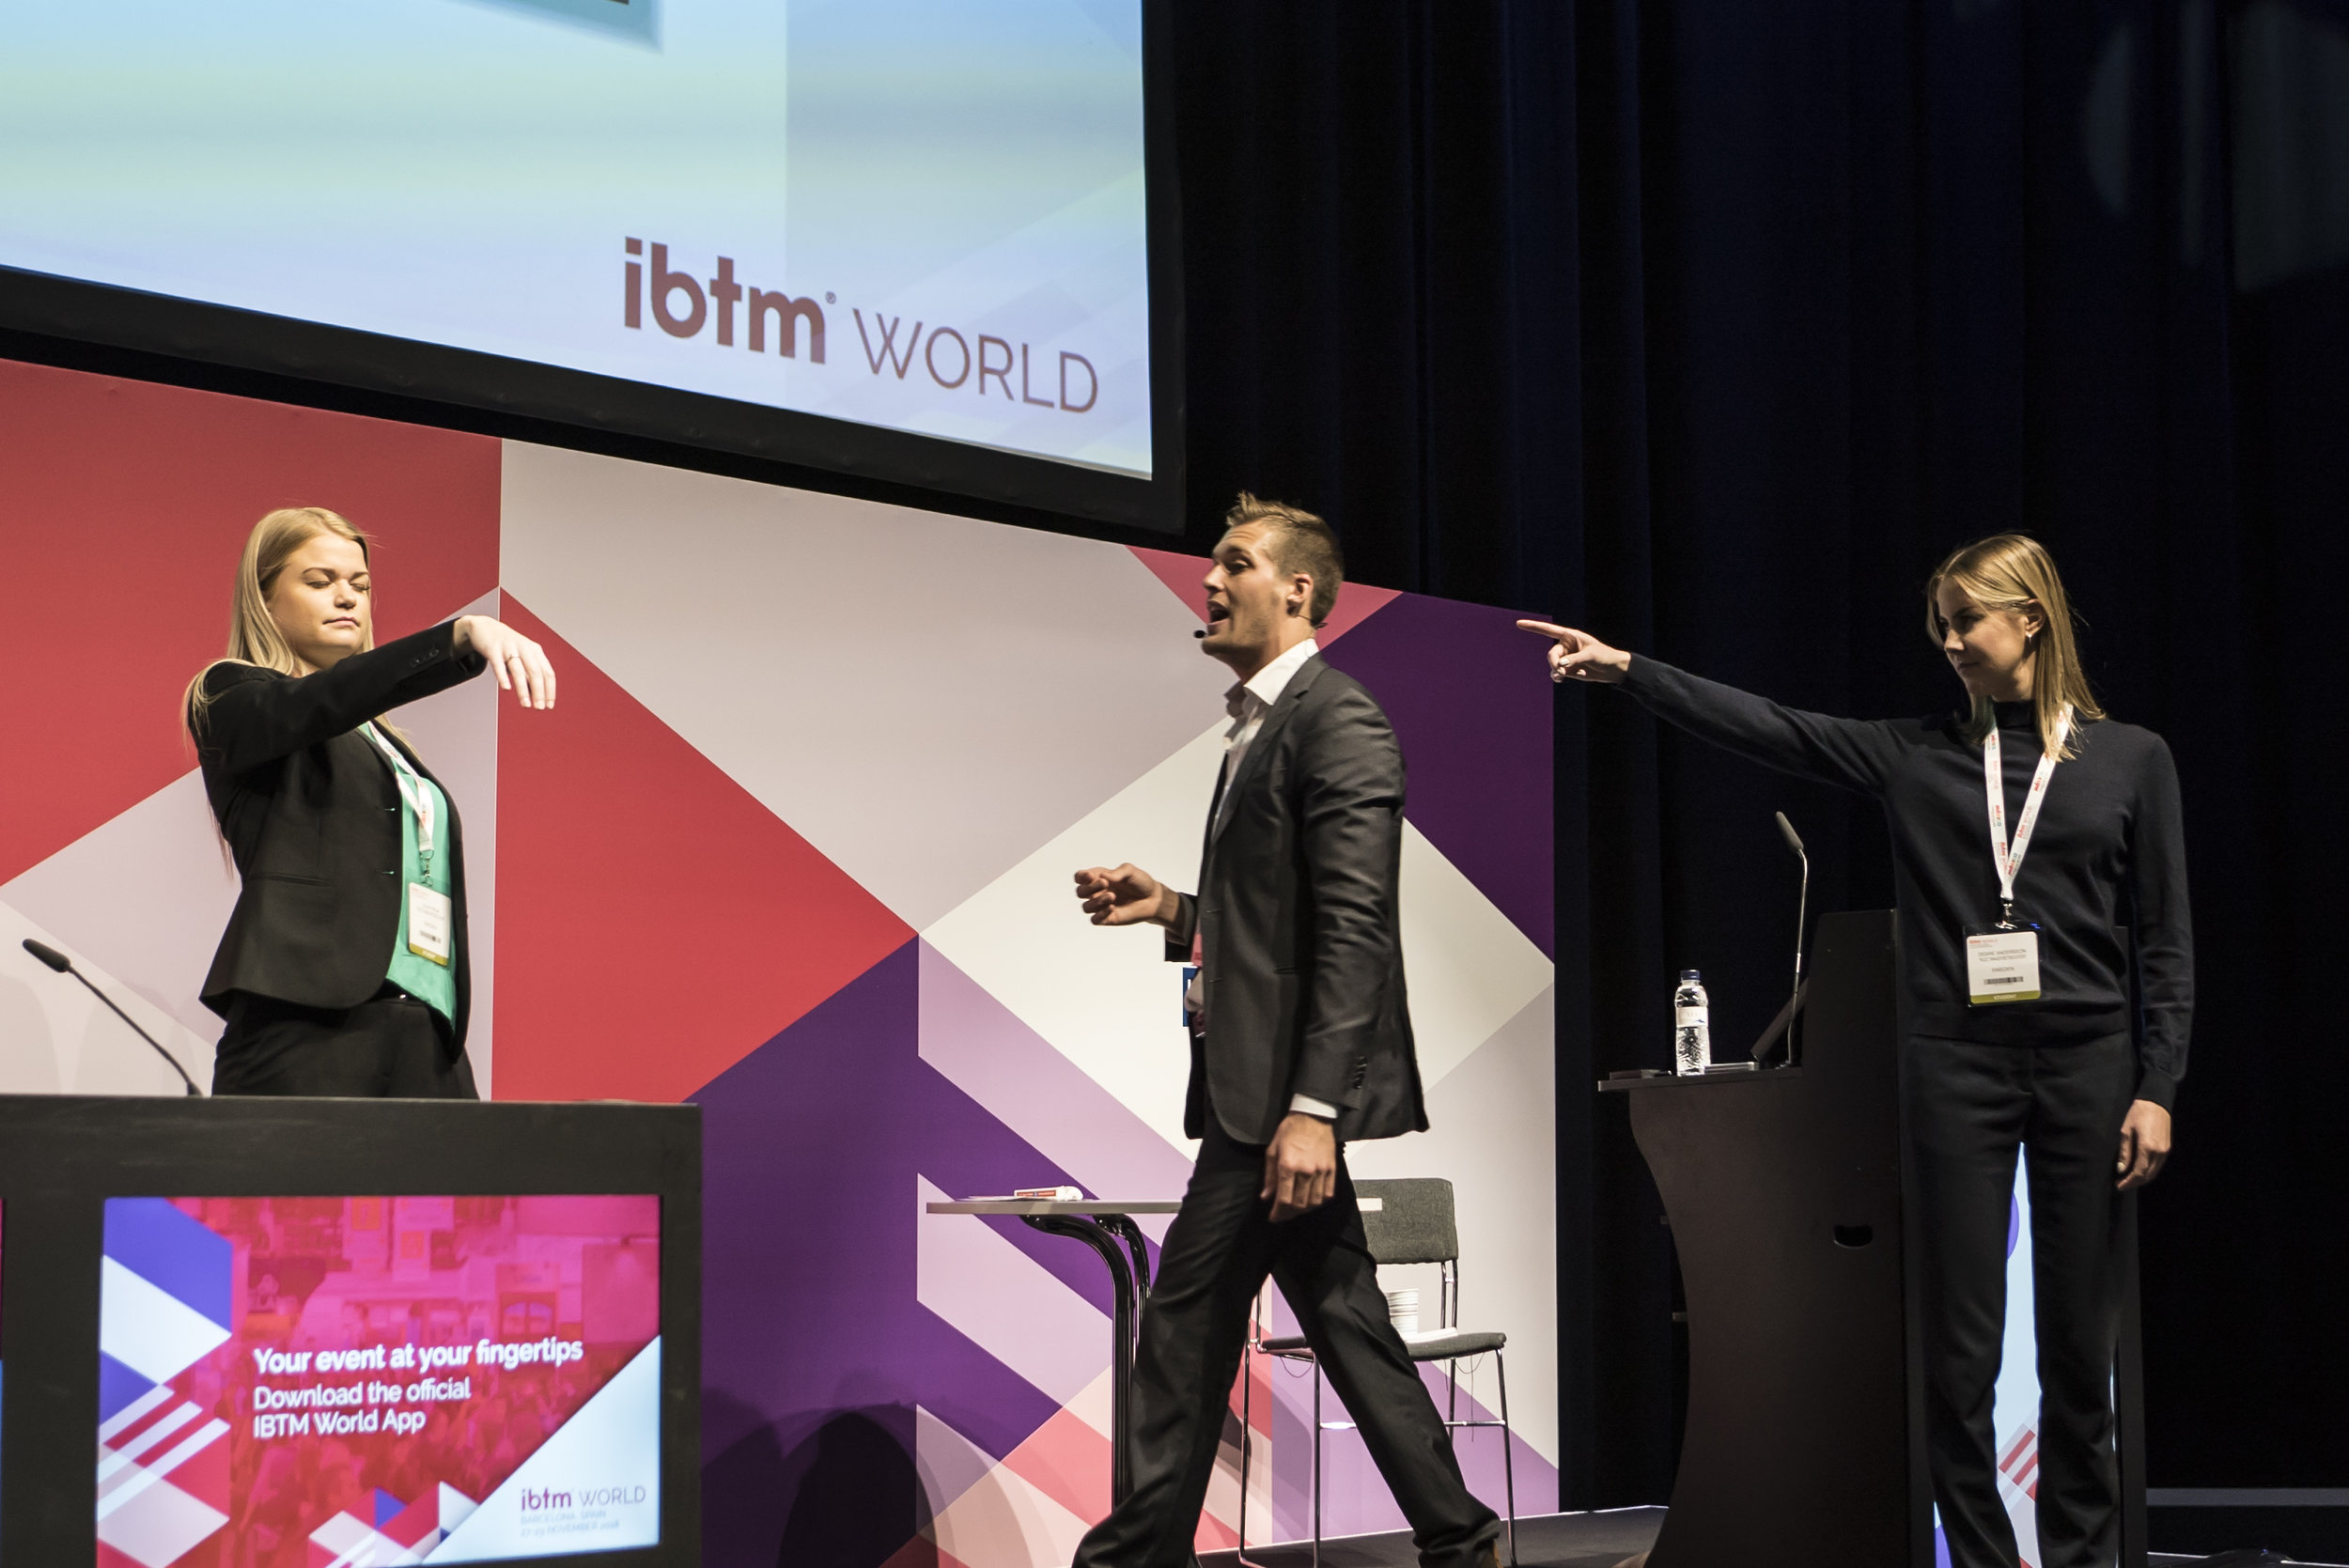 IBTM World Event Barcelona 2018